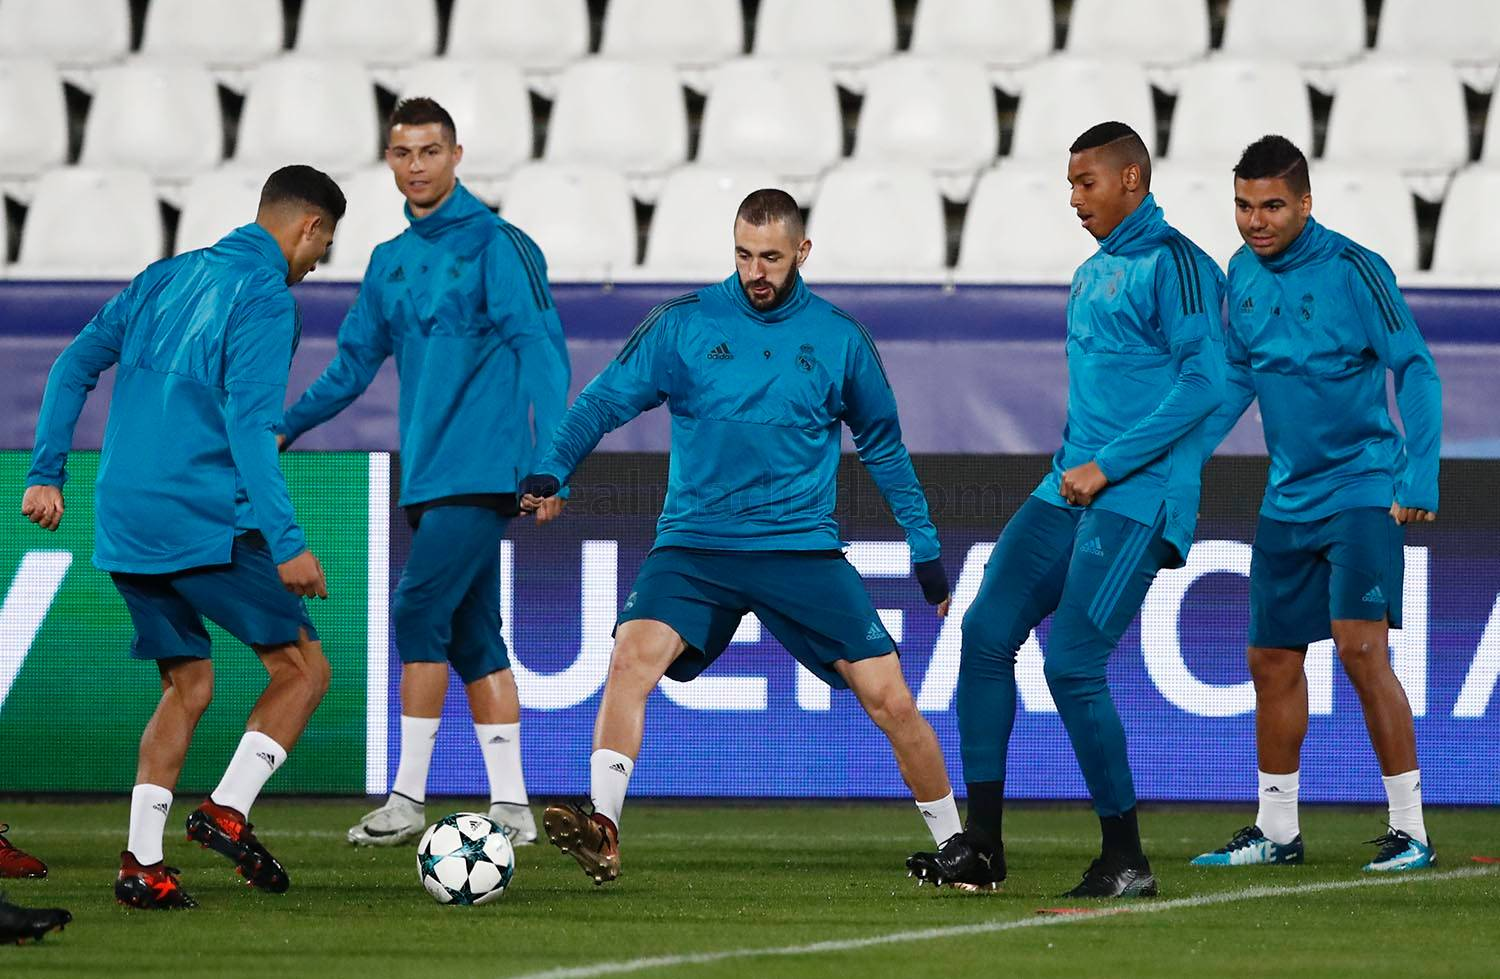 Real Madrid - Entrenamiento del Real Madrid en Nicosia - 20-11-2017